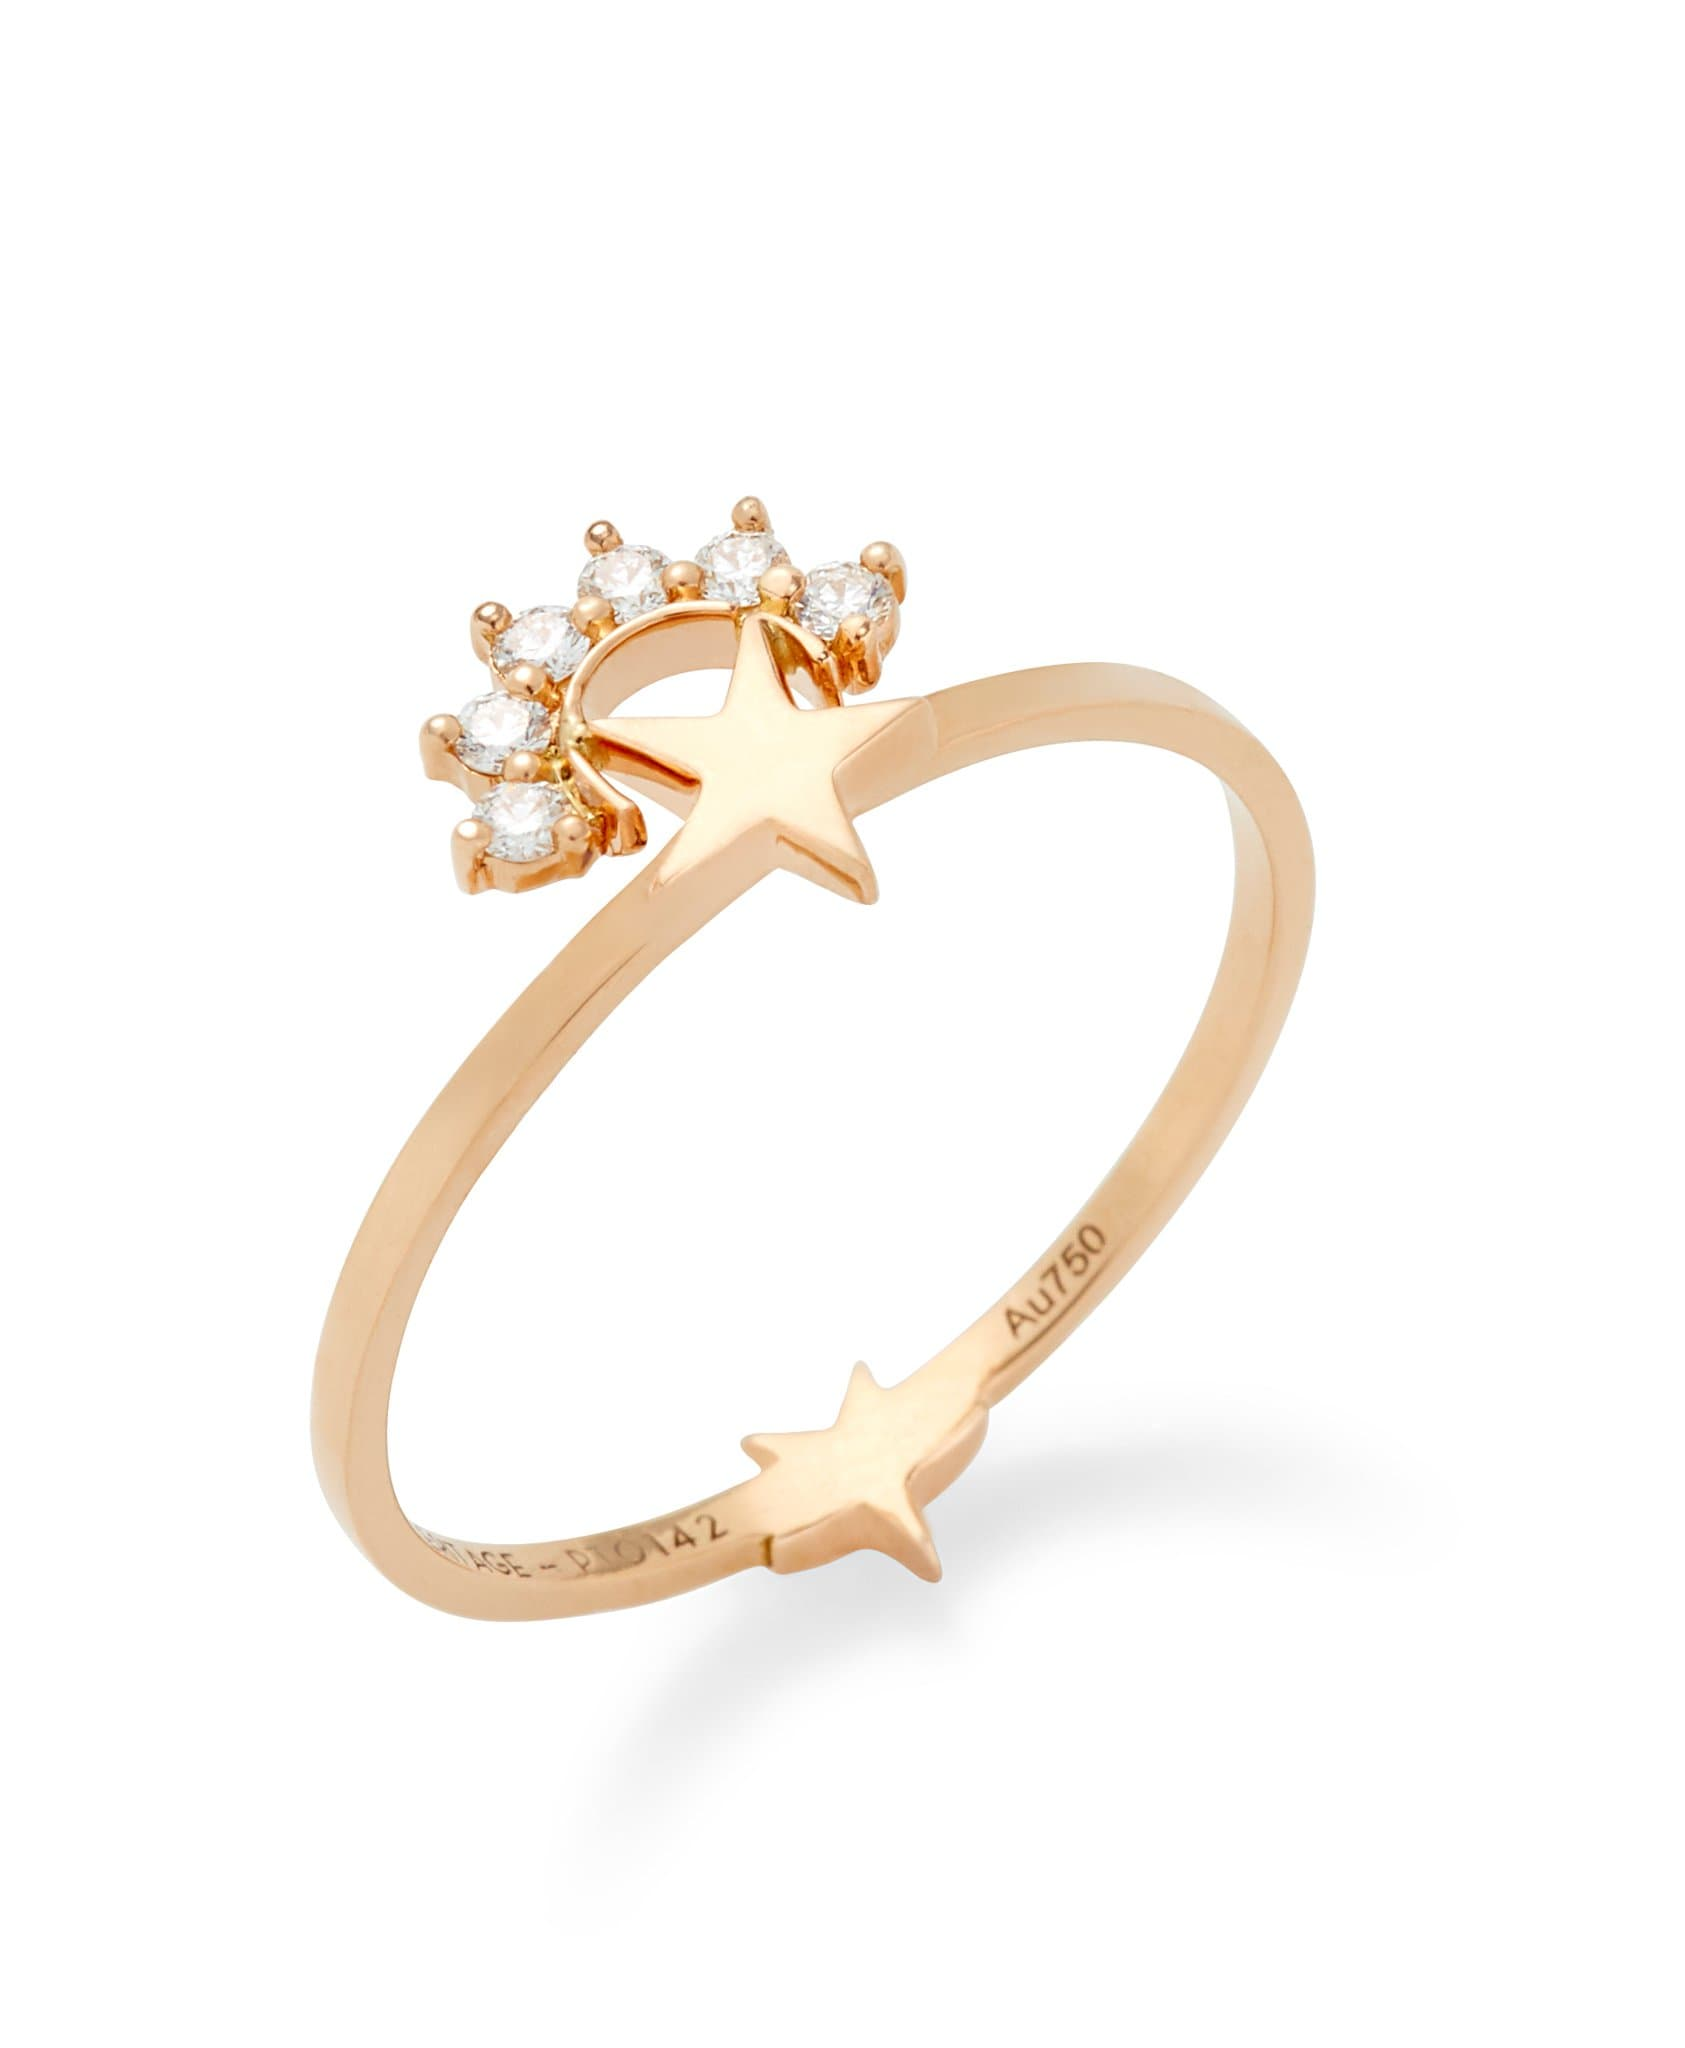 Small Star Ring - Nouvel Heritage